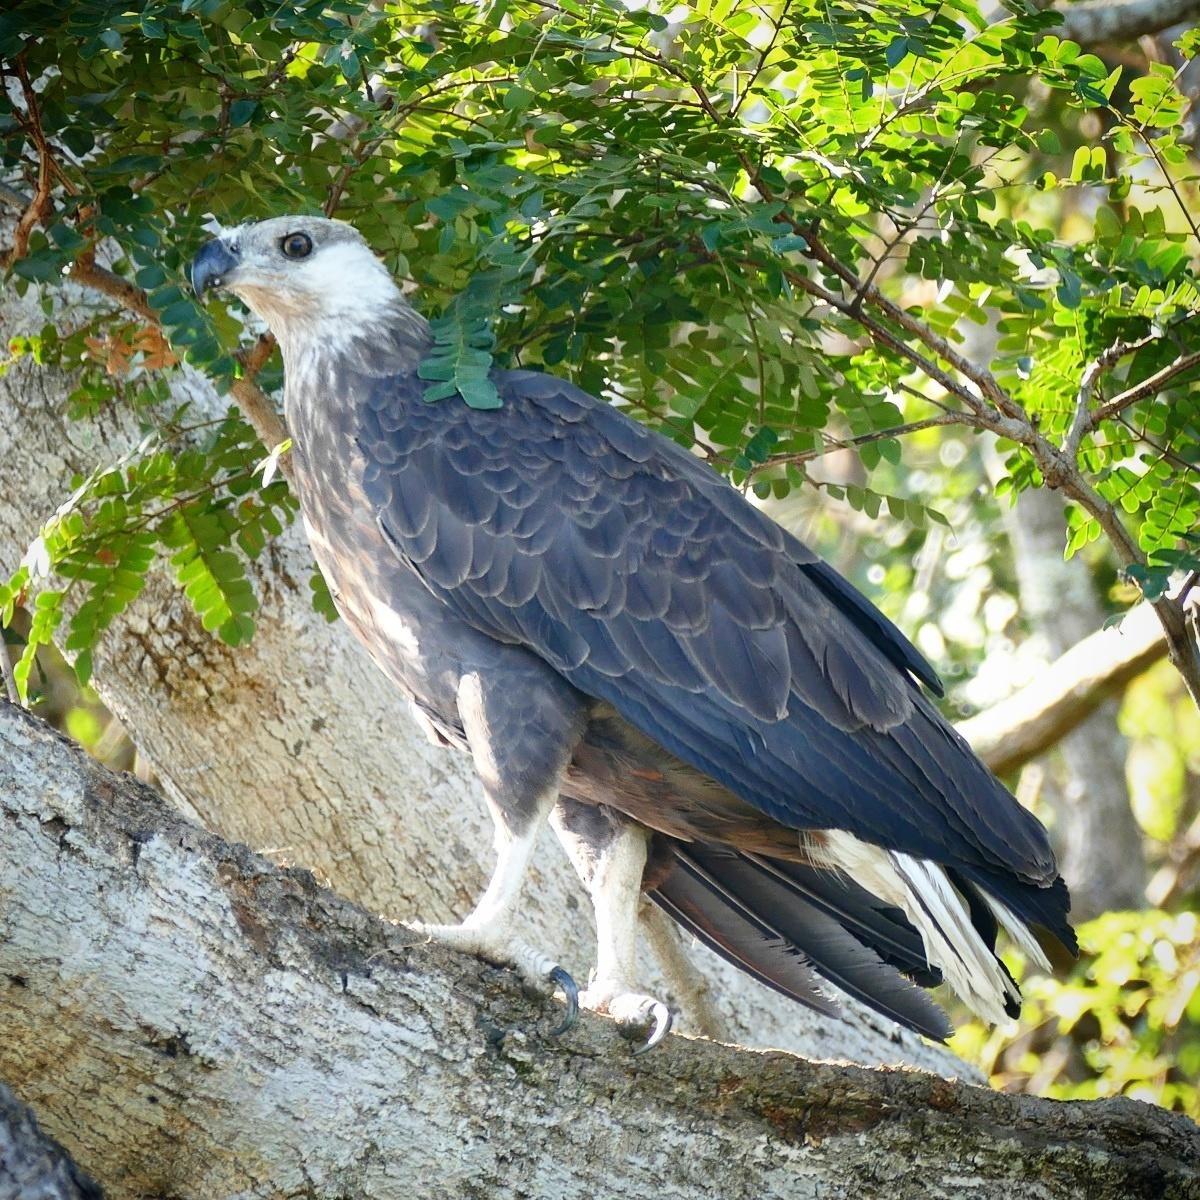 The Madagascar Fish-Eagle is one of the world's most threatened raptors. Noah Strycker